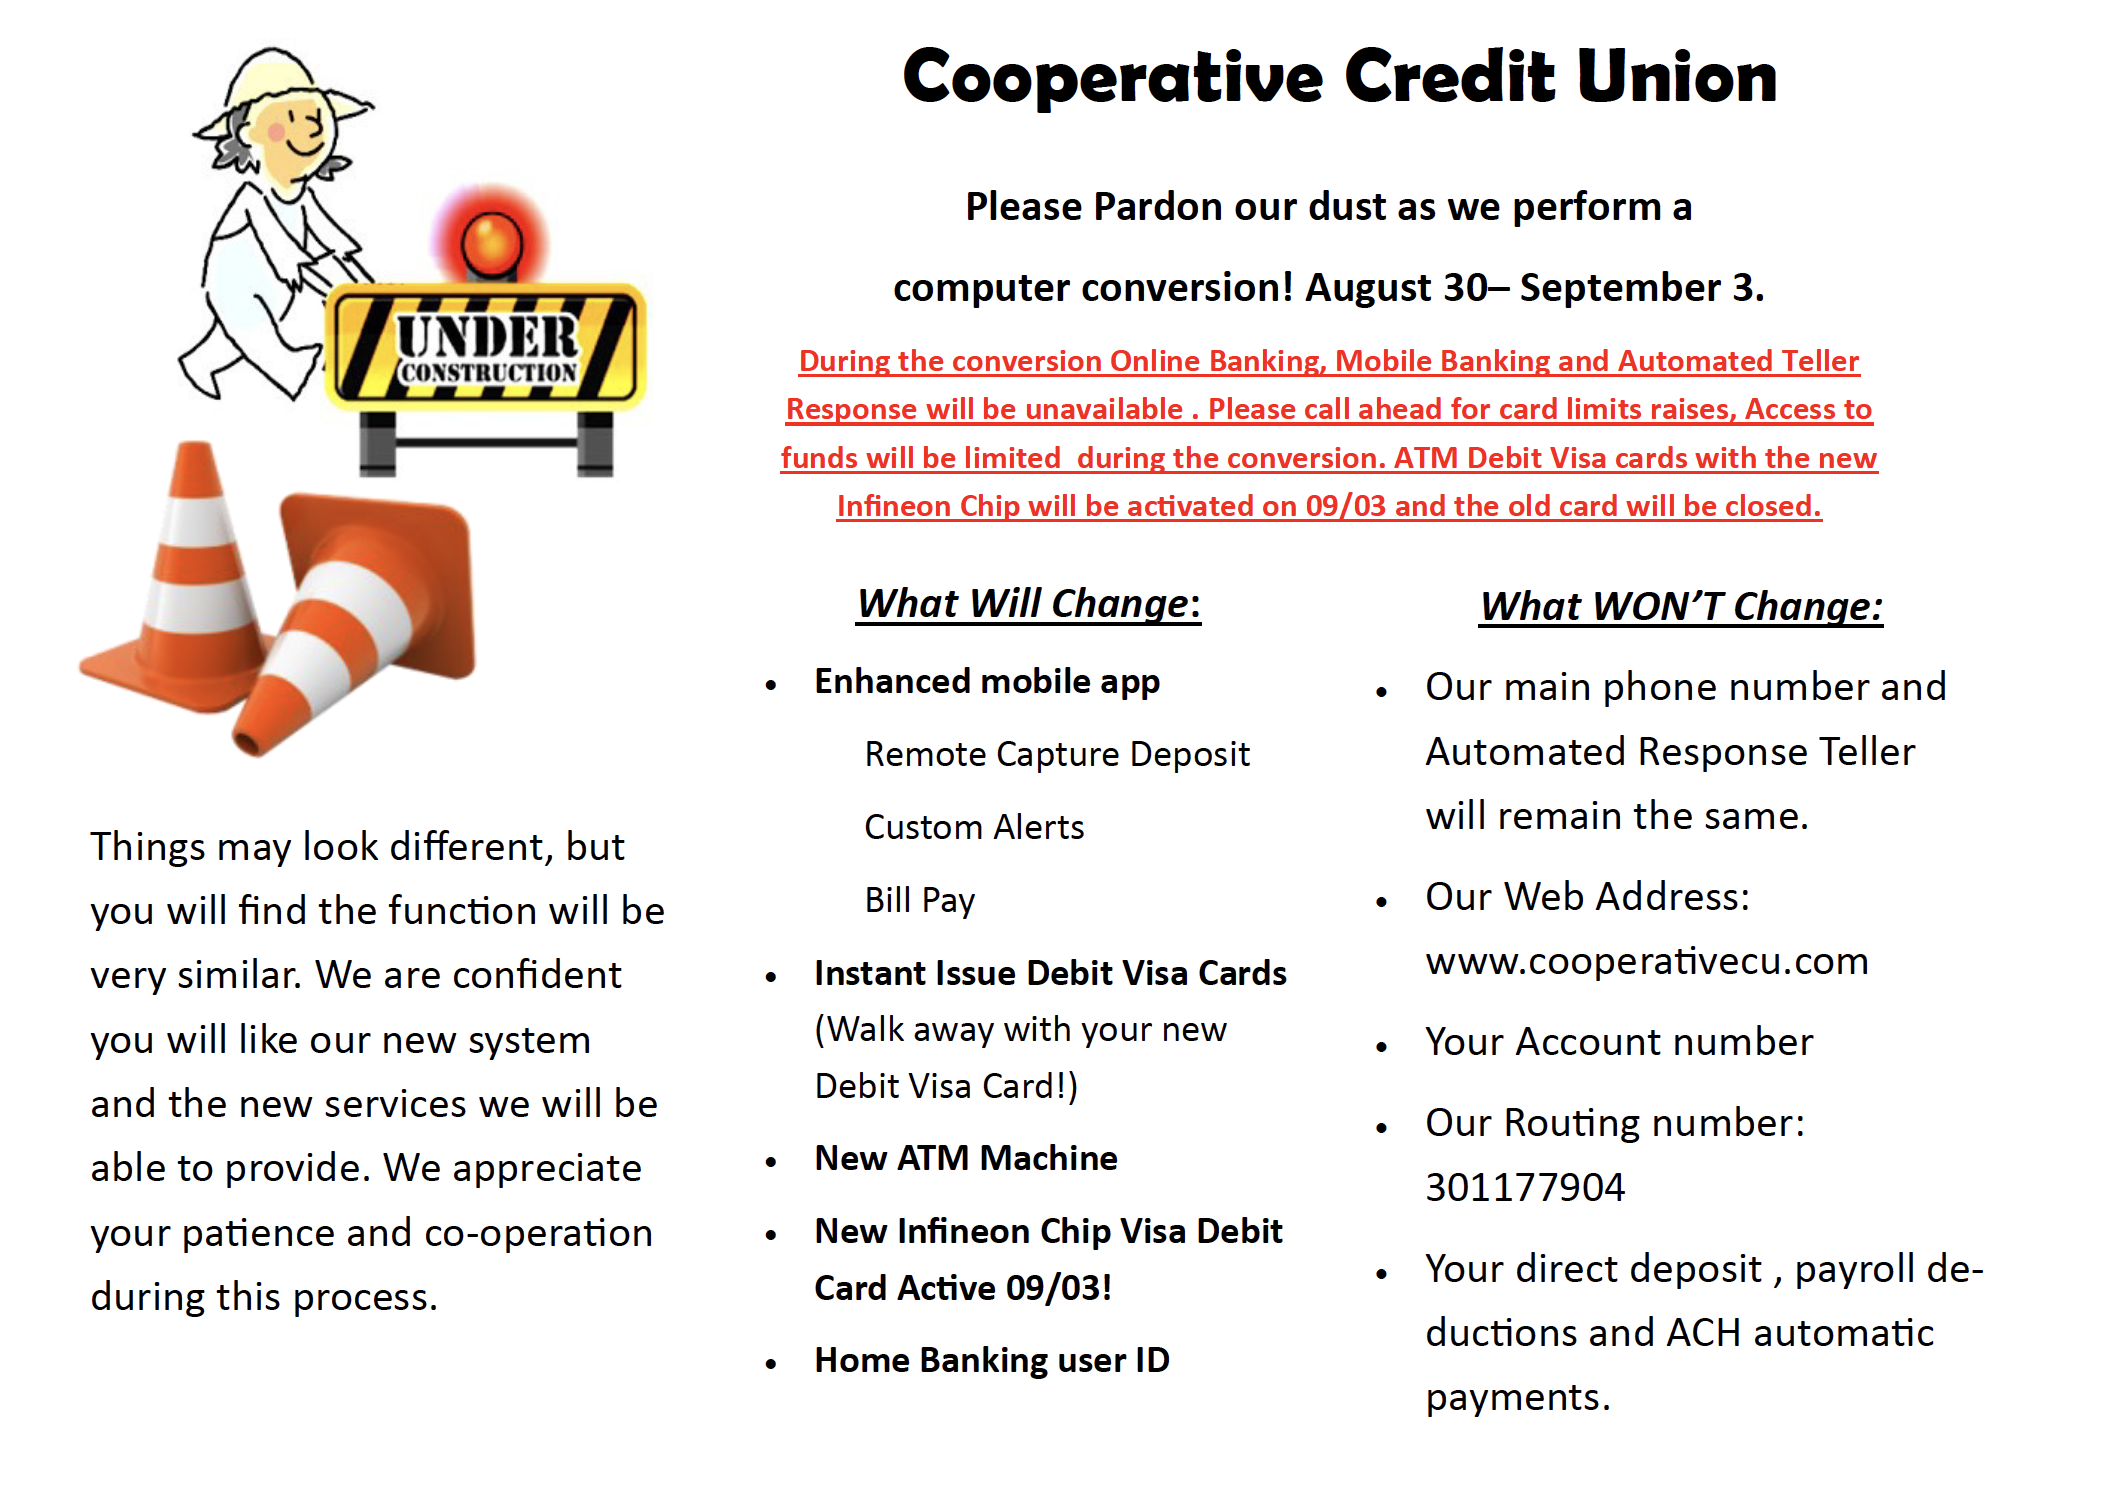 Computer Conversion for Cooperative Credit Union